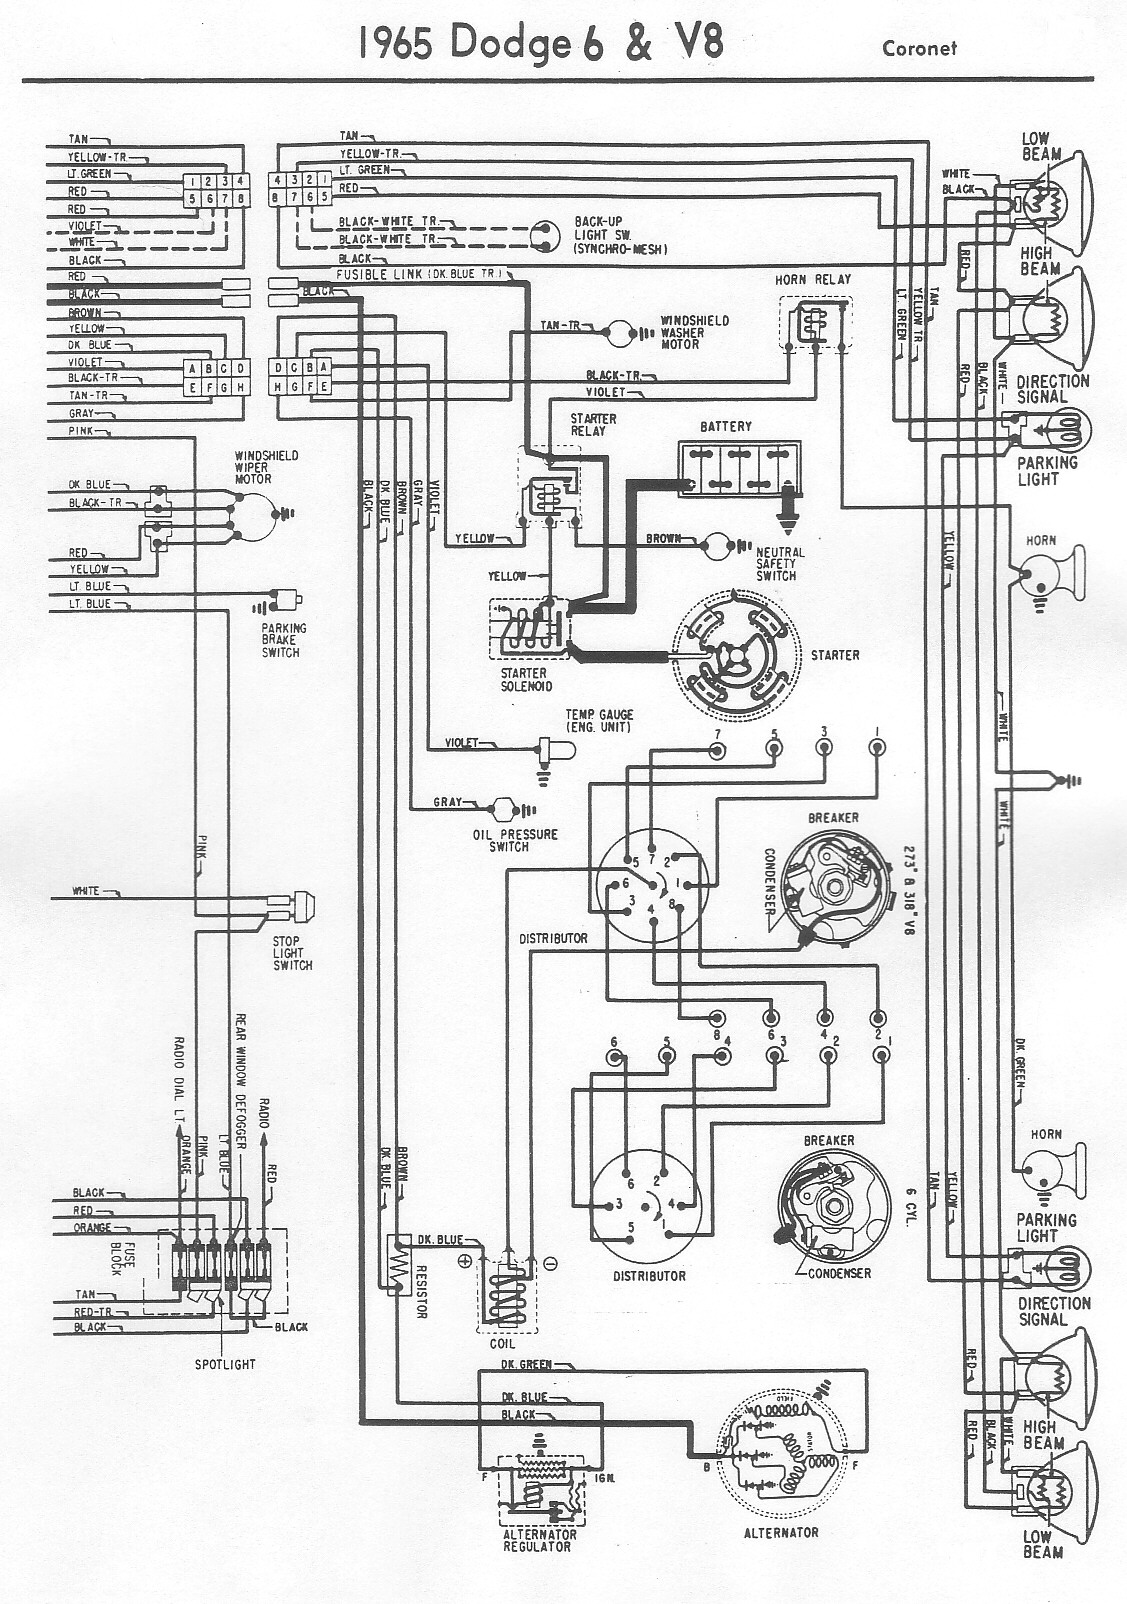 [DIAGRAM_38ZD]  1966 Dodge Coronet Wiring Diagram Diagram Base Website Wiring Diagram -  BATVENNDIAGRAM.FONDAZIONEDONNAREGINA.IT | 1966 Dodge Charger Wiring Diagram |  | Diagram Base Website Full Edition - fondazionedonnaregina.it